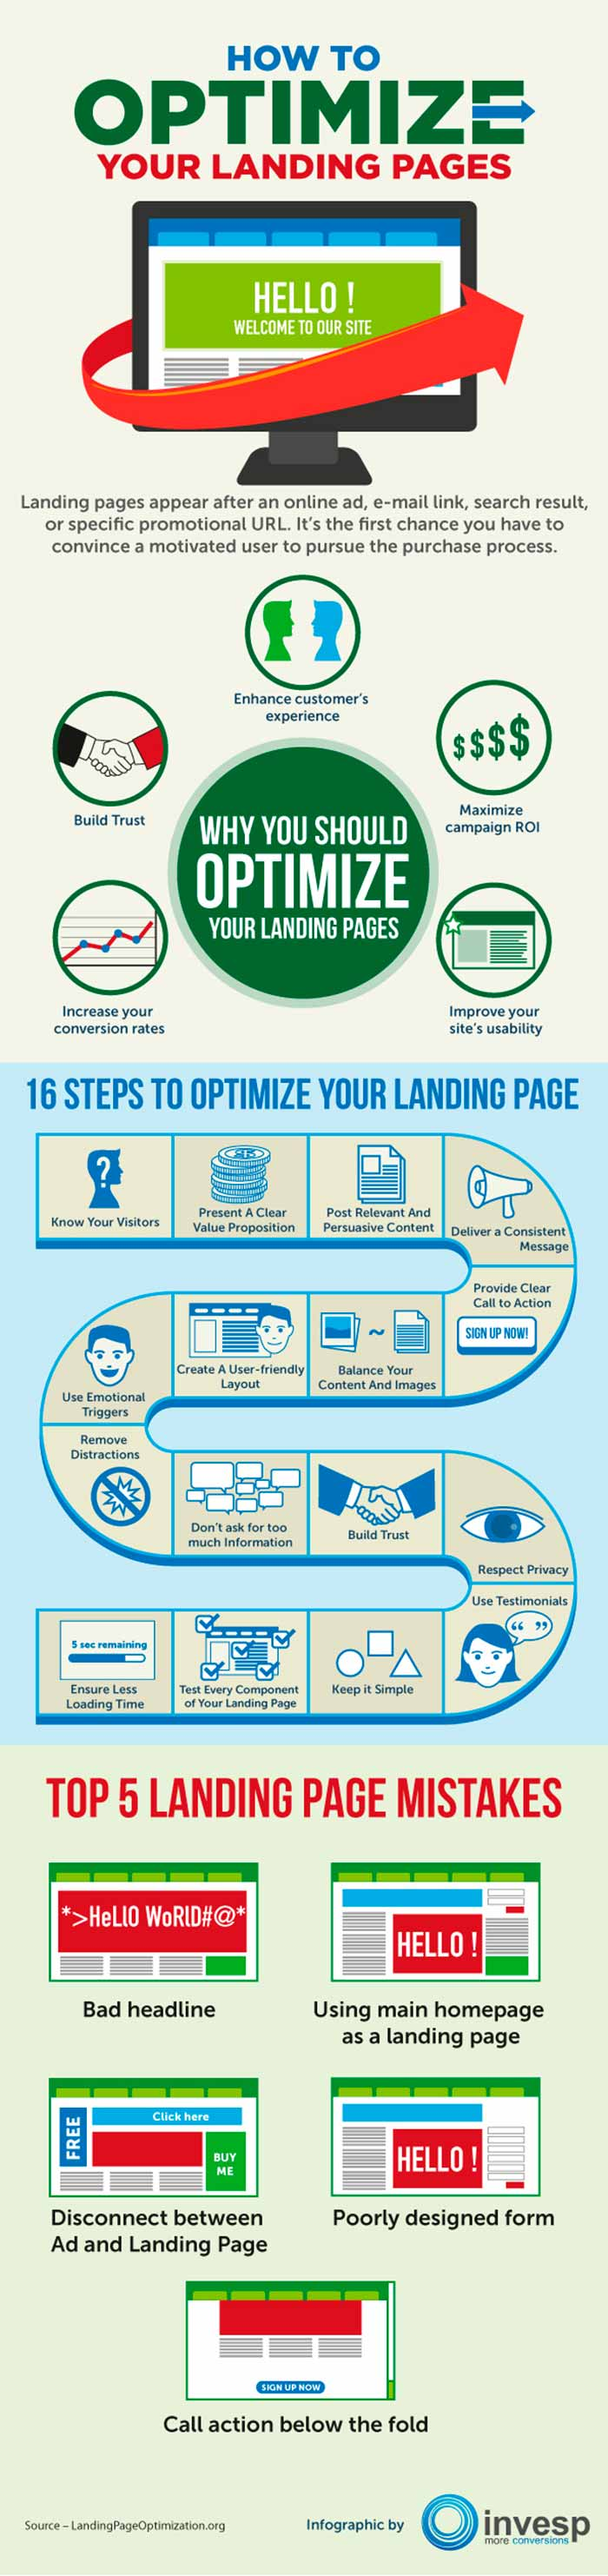 How to optimize your landing page